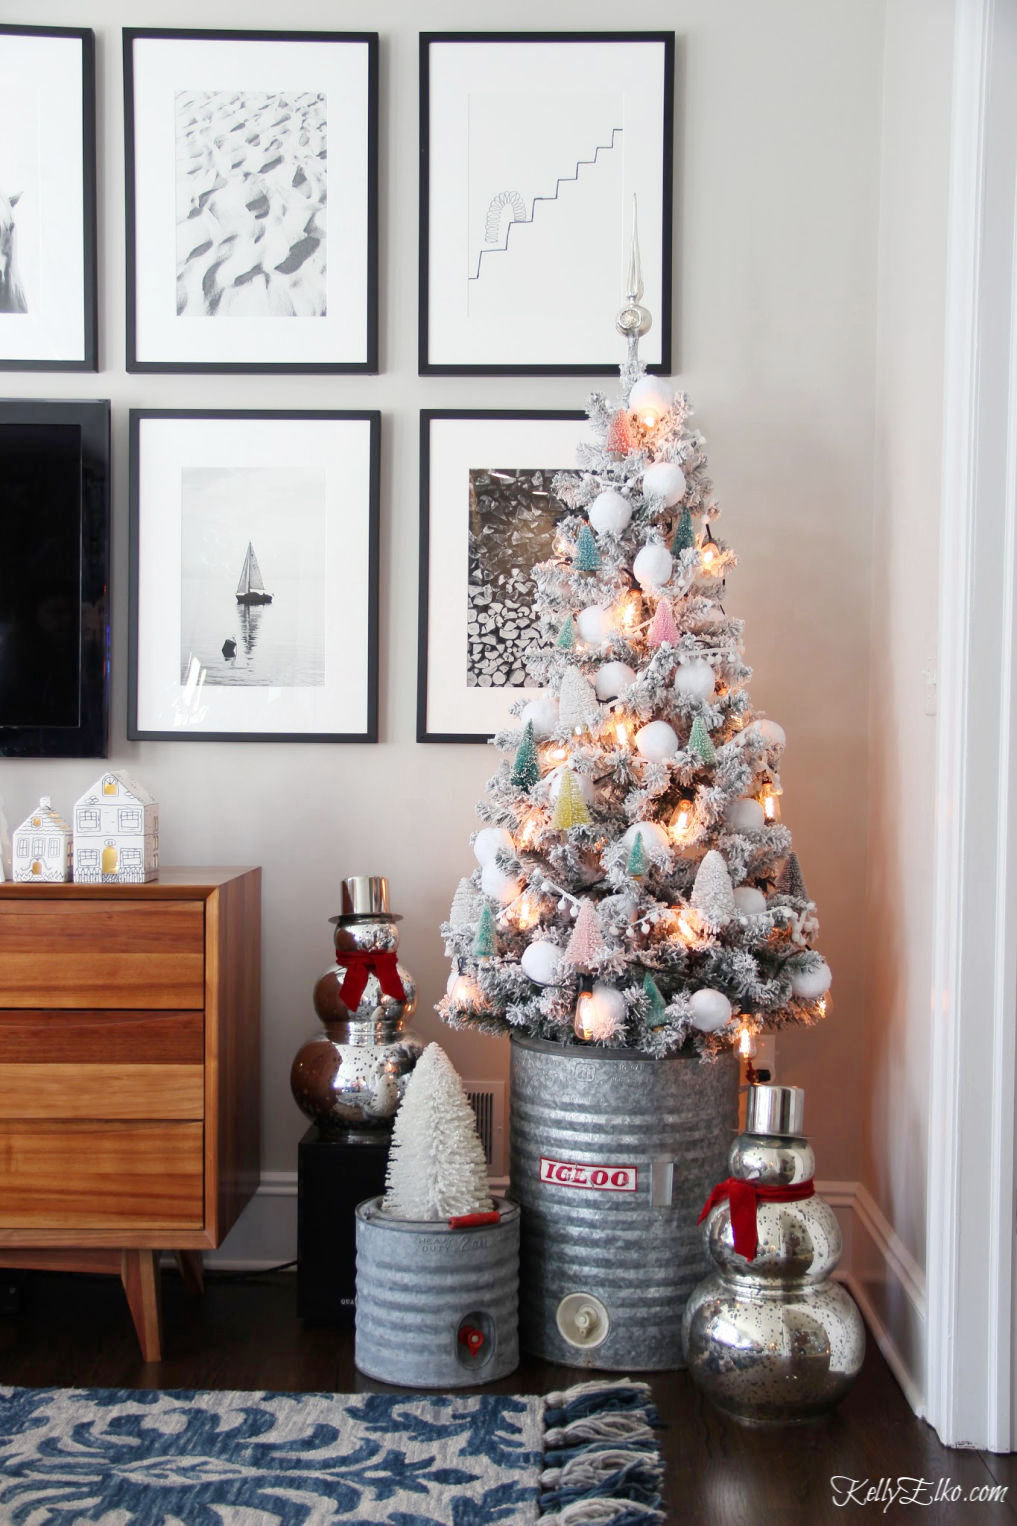 Creative Christmas Home Tour with tons of DIY and decorating ideas like this flocked tree with bottle brush tree ornaments kellyelko.com #christmas #christmasdecor #christmasdecorating #christmashome #christmastour #diychristmas #christmasideas #christmasmantel #christmastree #christmasornaments #vintagechristmas #farmhousechristmas #colorfulchristmas #creativechristmas #kellyelko #bottlebrushtrees #vintagedecor #repurpose #upcycle #mercuryglass